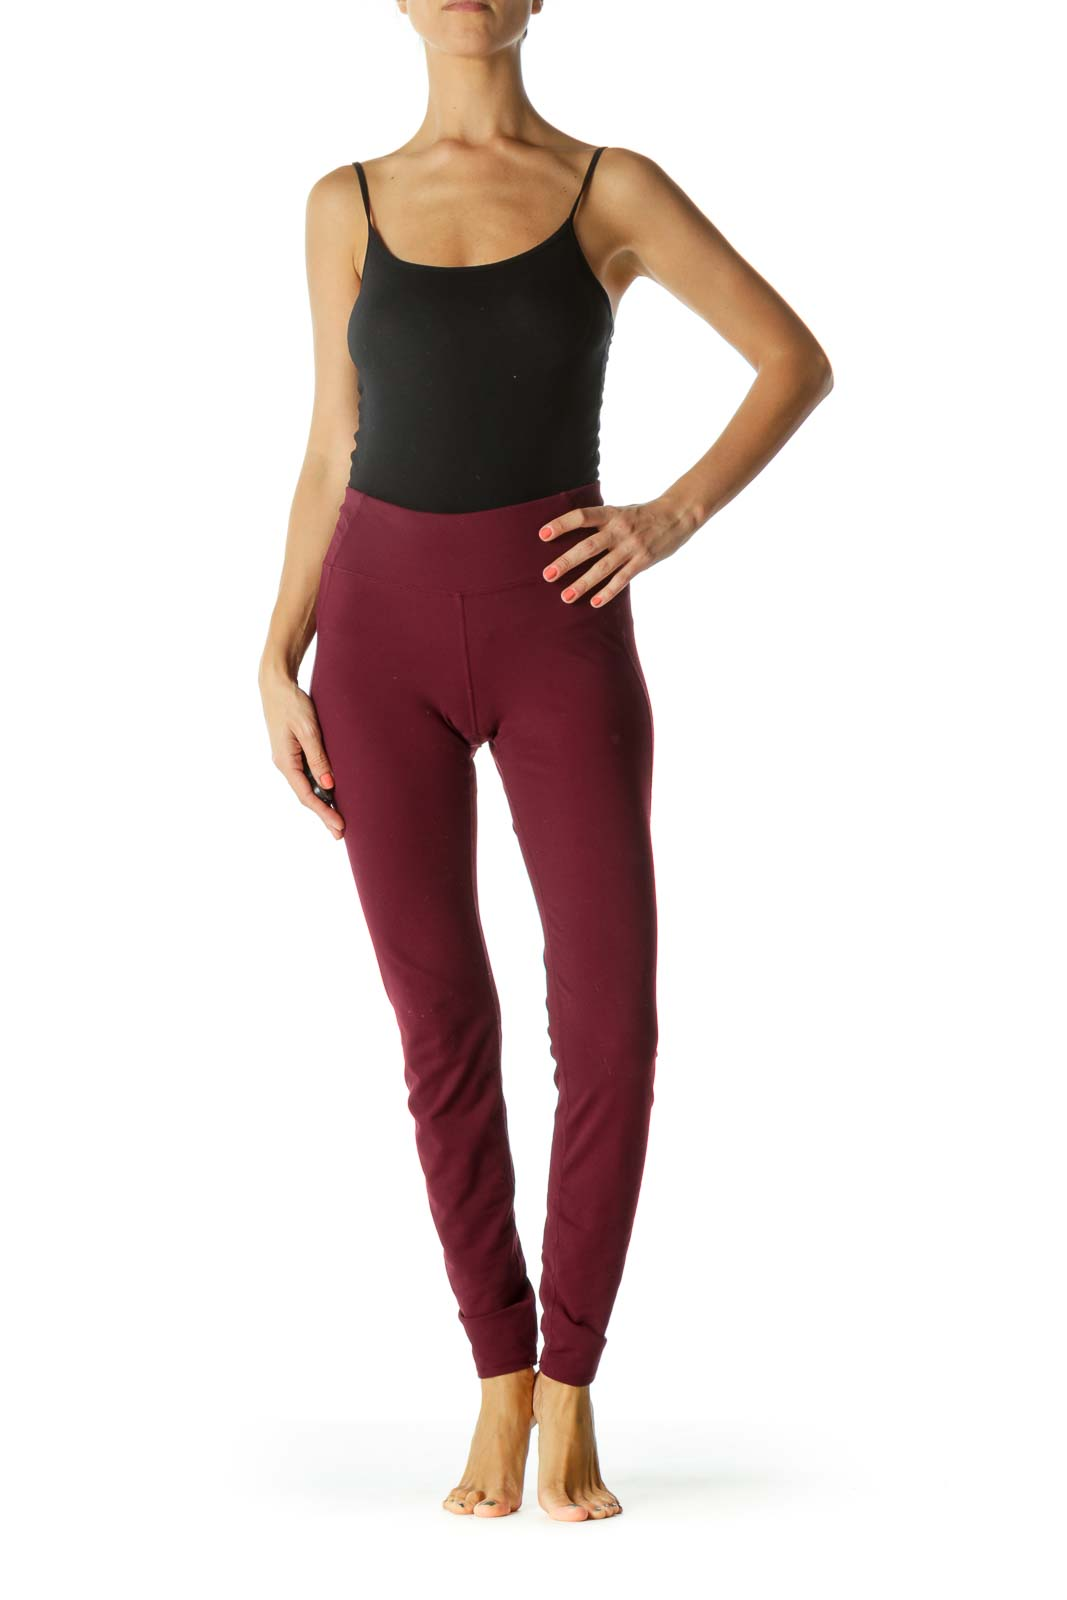 Burgundy Sports Pants with Inside Small Hip Pocket